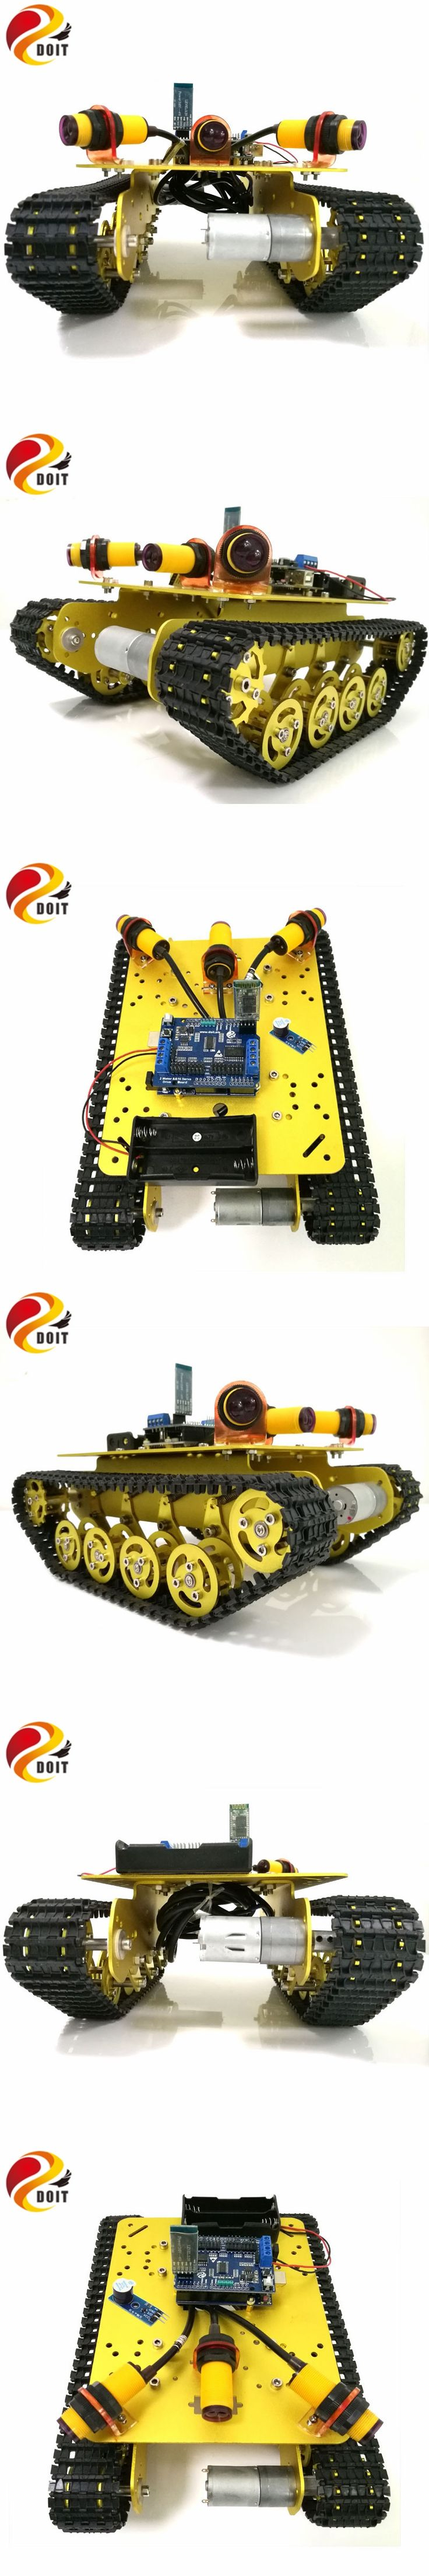 DOIT TS100 Bluetooth Control Obstacle Avoidance Robot Crawler Tank Car Chassis with Shock Absorption for Modification by Phone